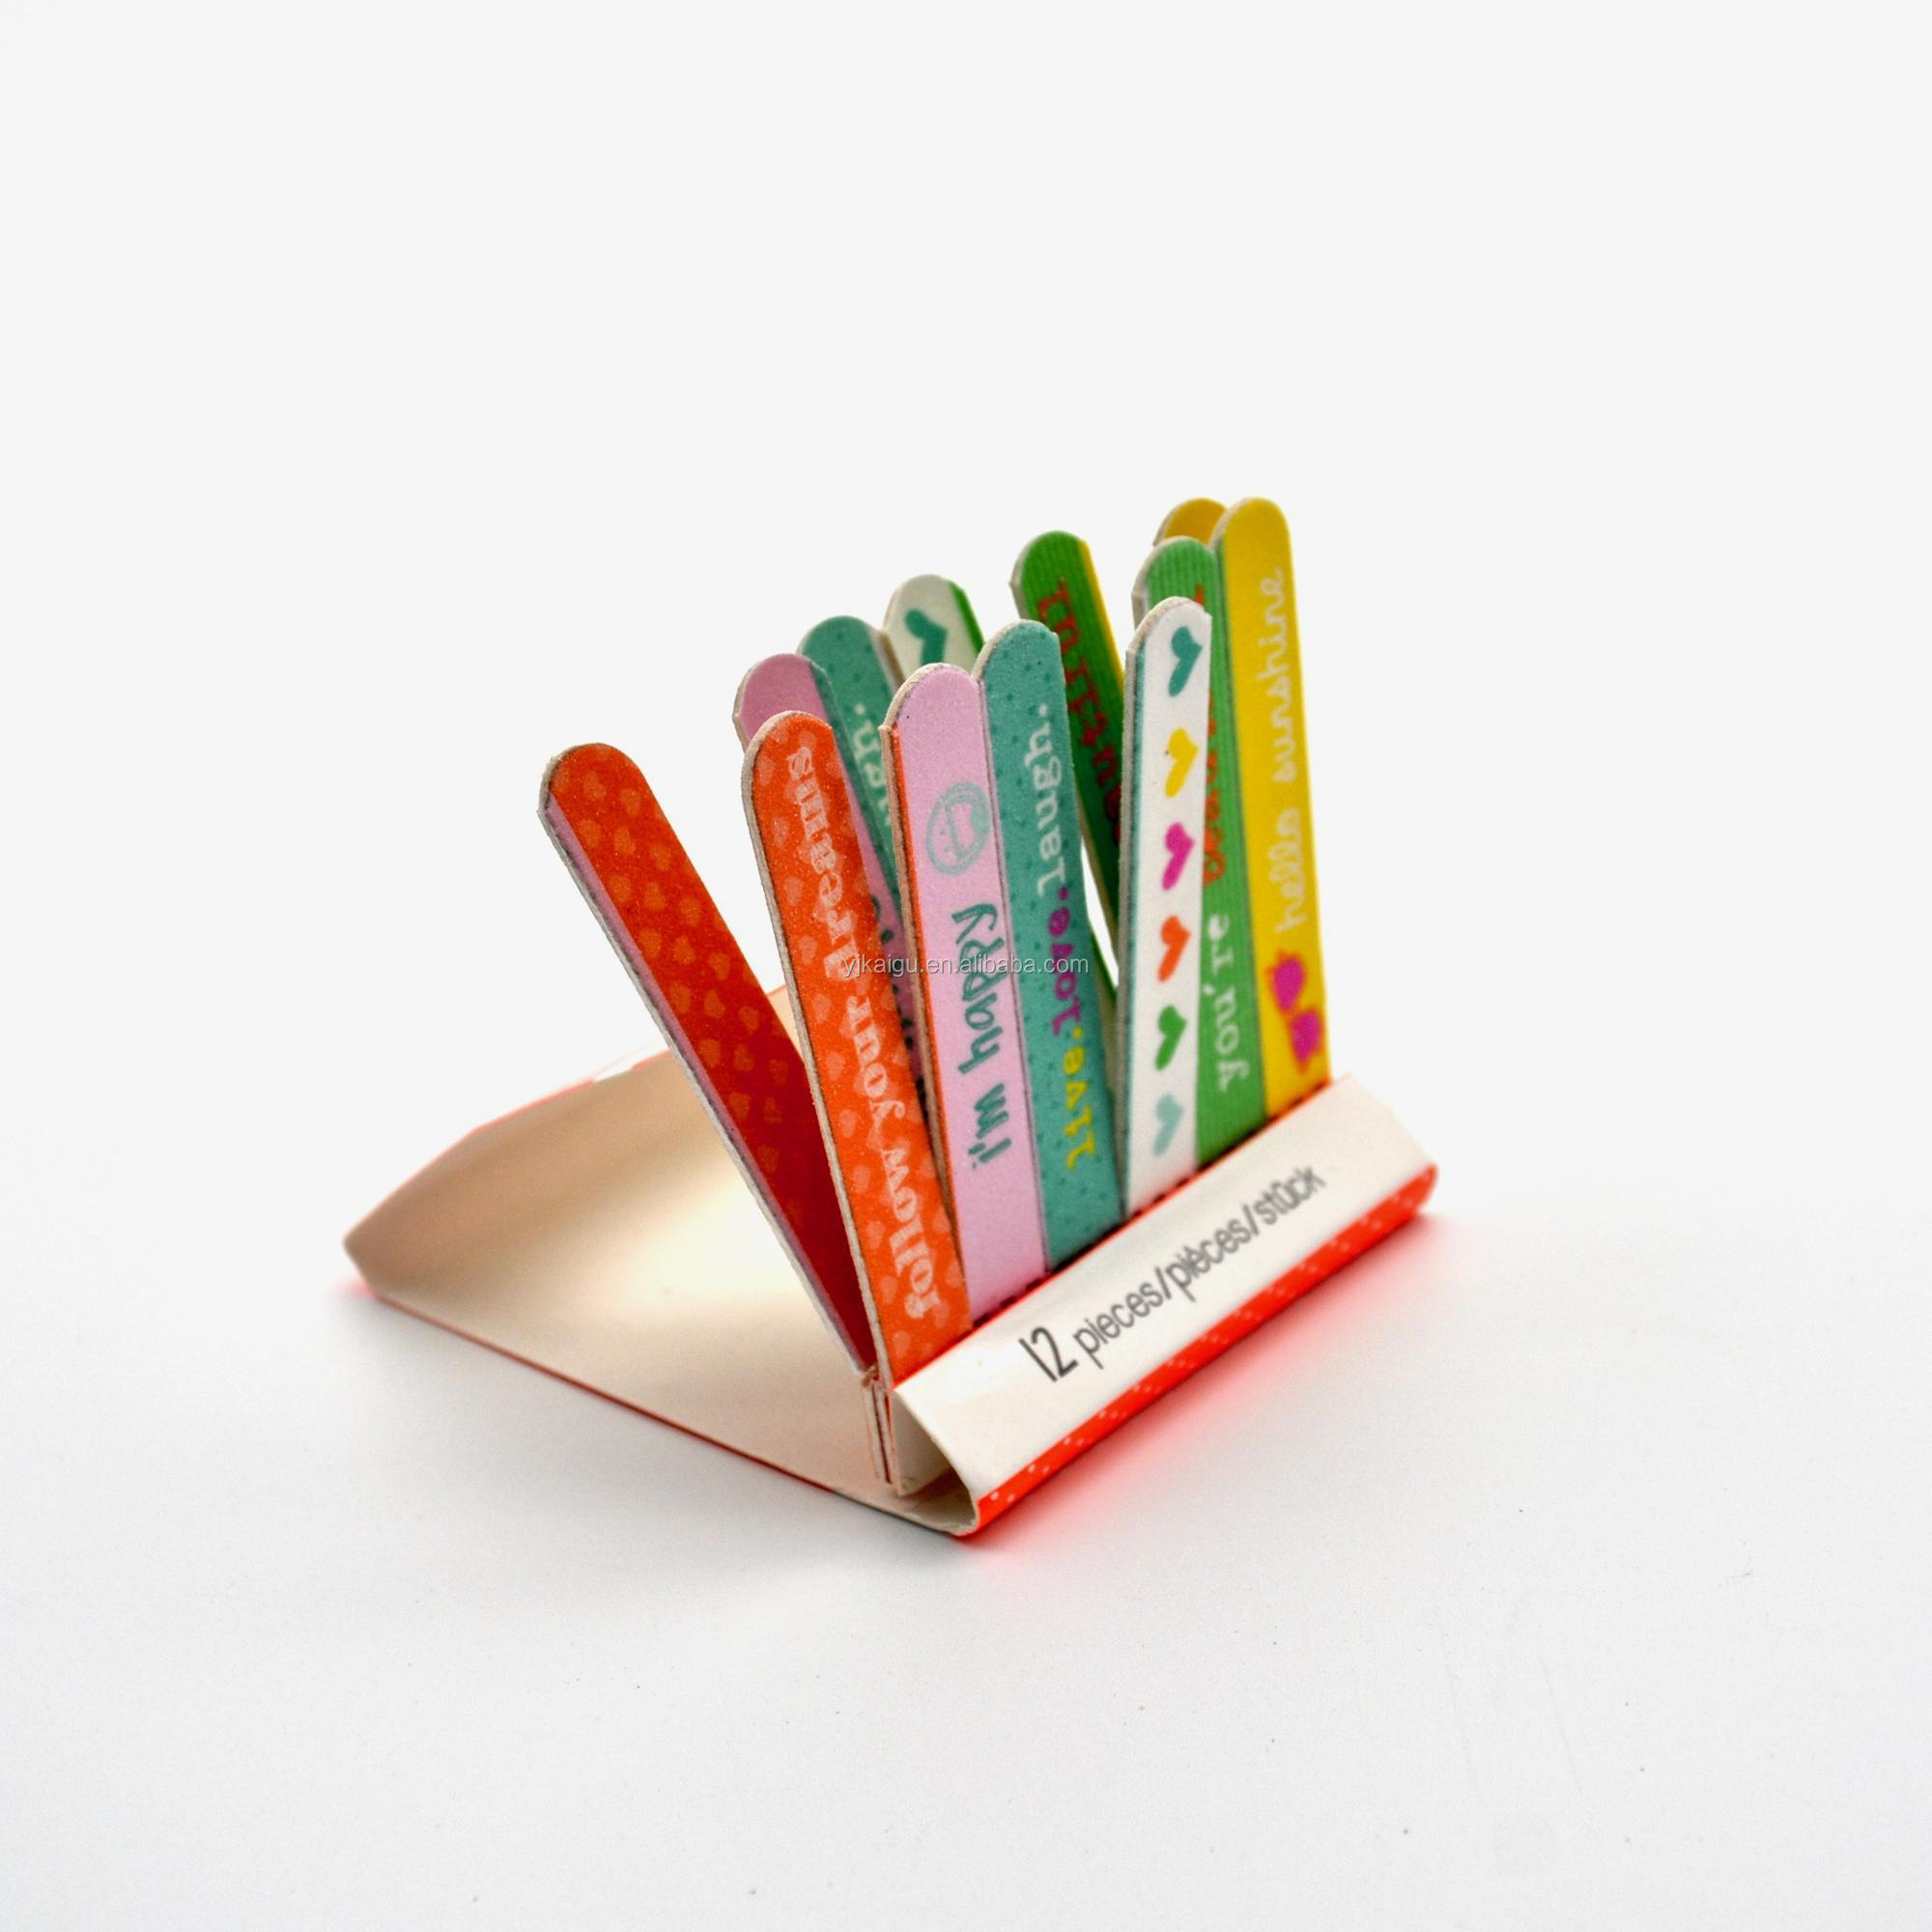 Wholesale wood nail file - Online Buy Best wood nail file from China ...